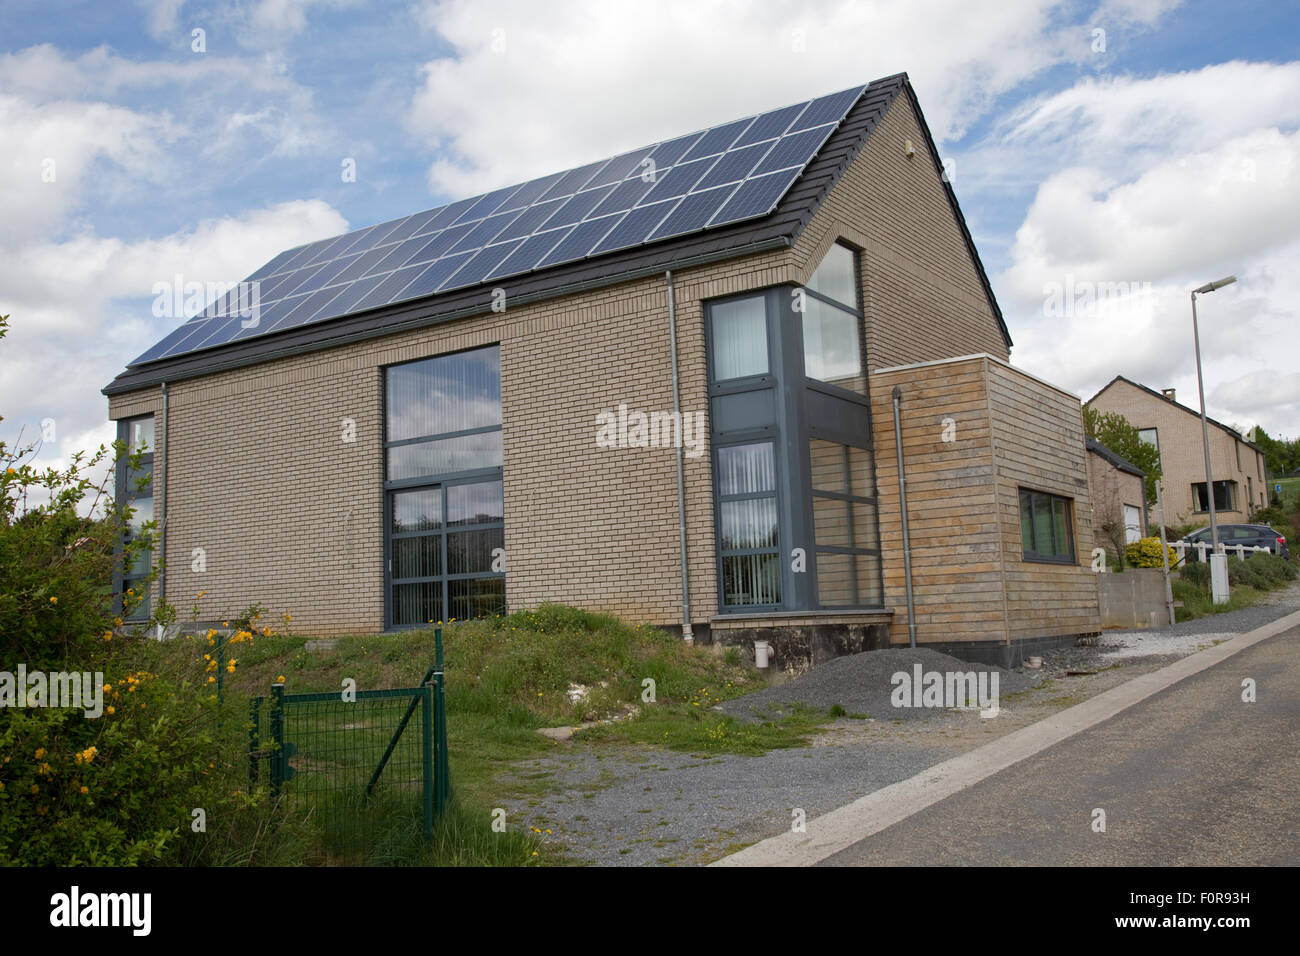 Photovoltaic PV solar panels on roof of domestic house in Germany - Stock Image